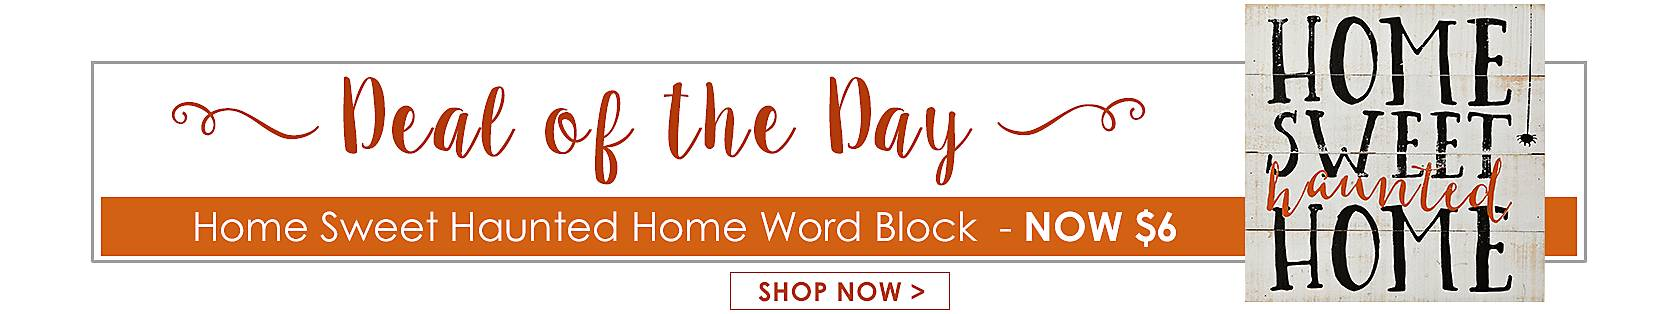 Deal of the Day -Home Sweet Haunted Word Block Now $6 - Shop Now